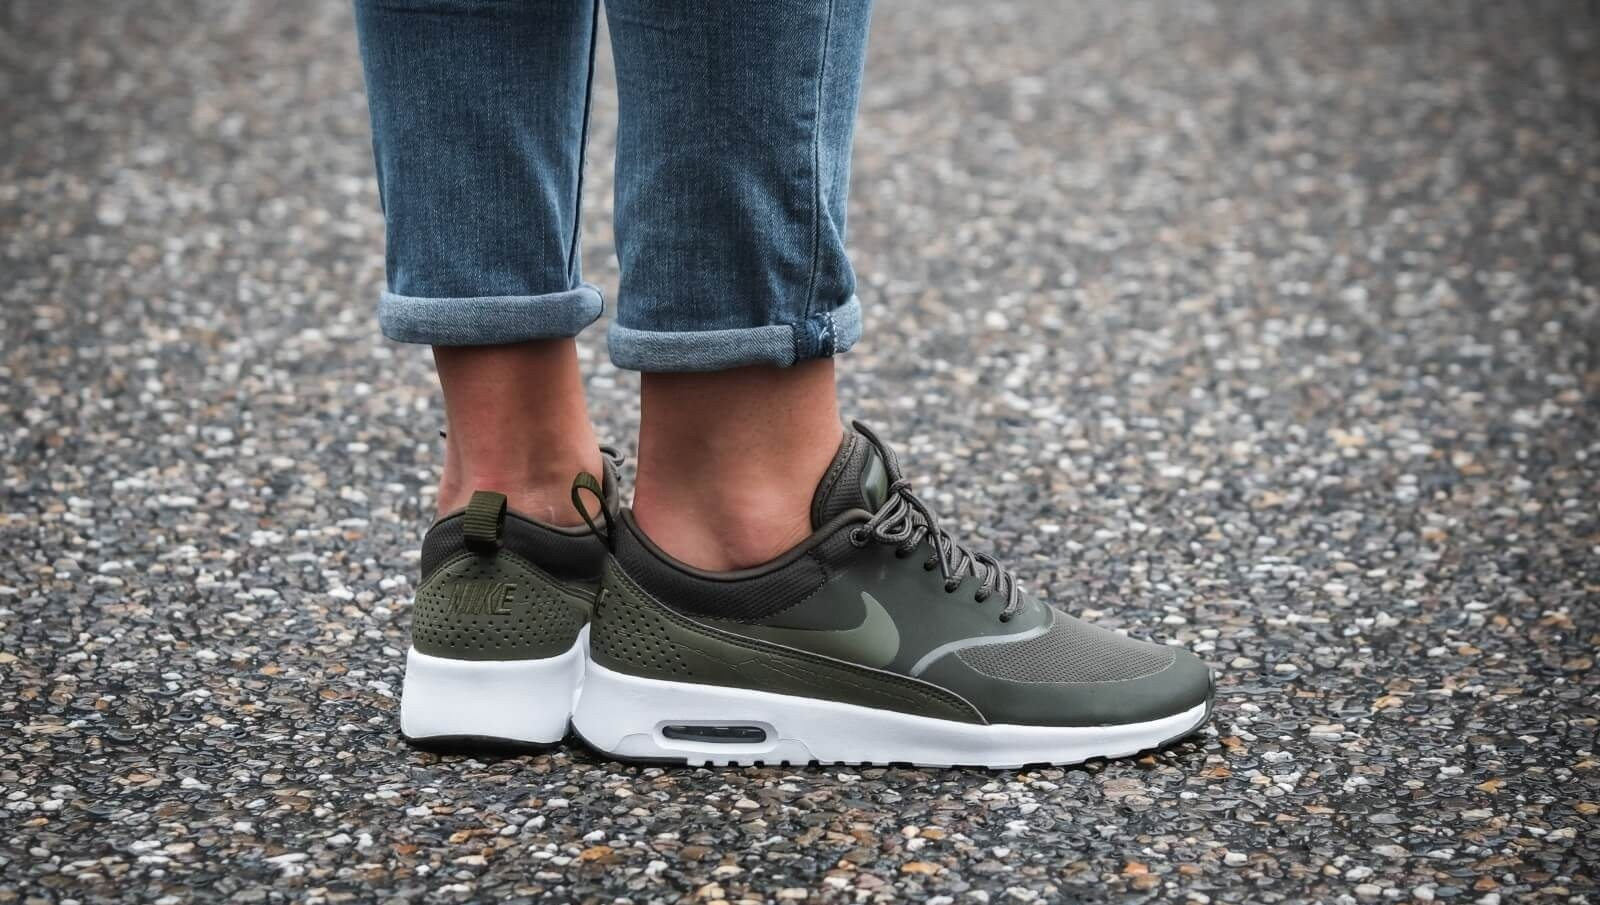 Nike Mujer Air Max Thea (Cargo Khaki/Olive/Blancas) 599409-309